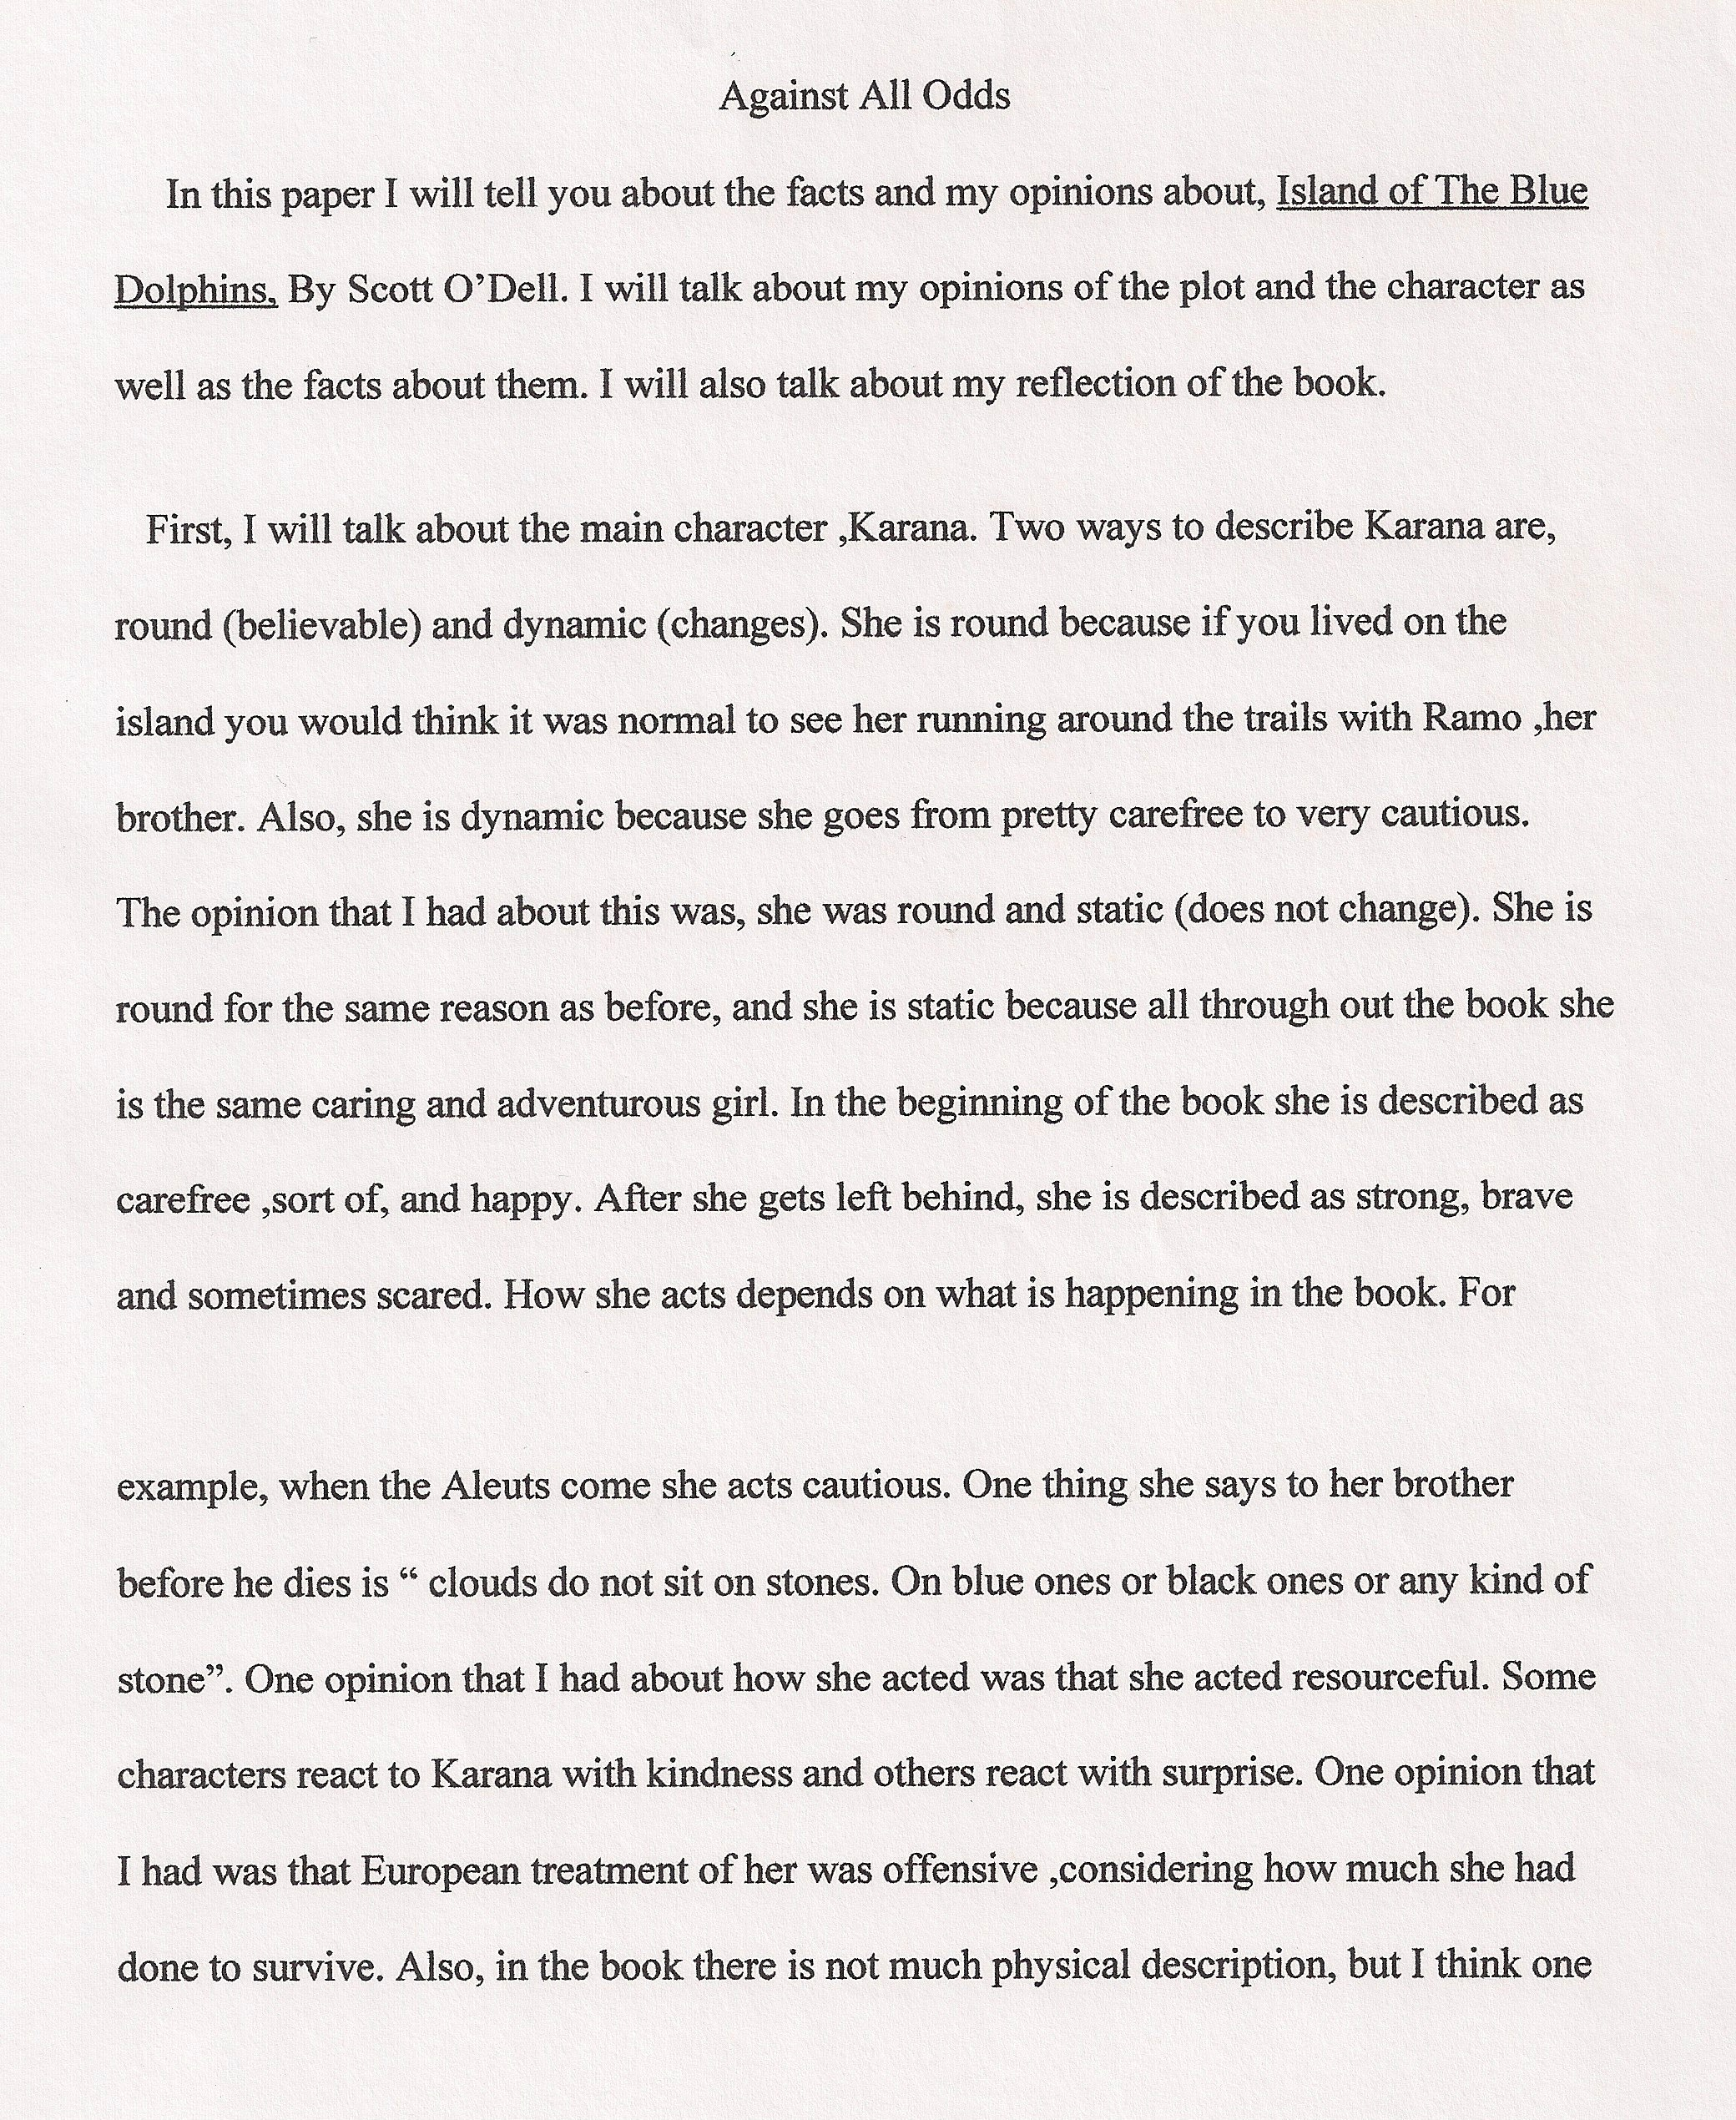 011 Persuasive Essay Writing For 5th Grade Example Week Against All Odds Merifully Samples L Impressive Essays Written By Fifth Graders Sample A Full